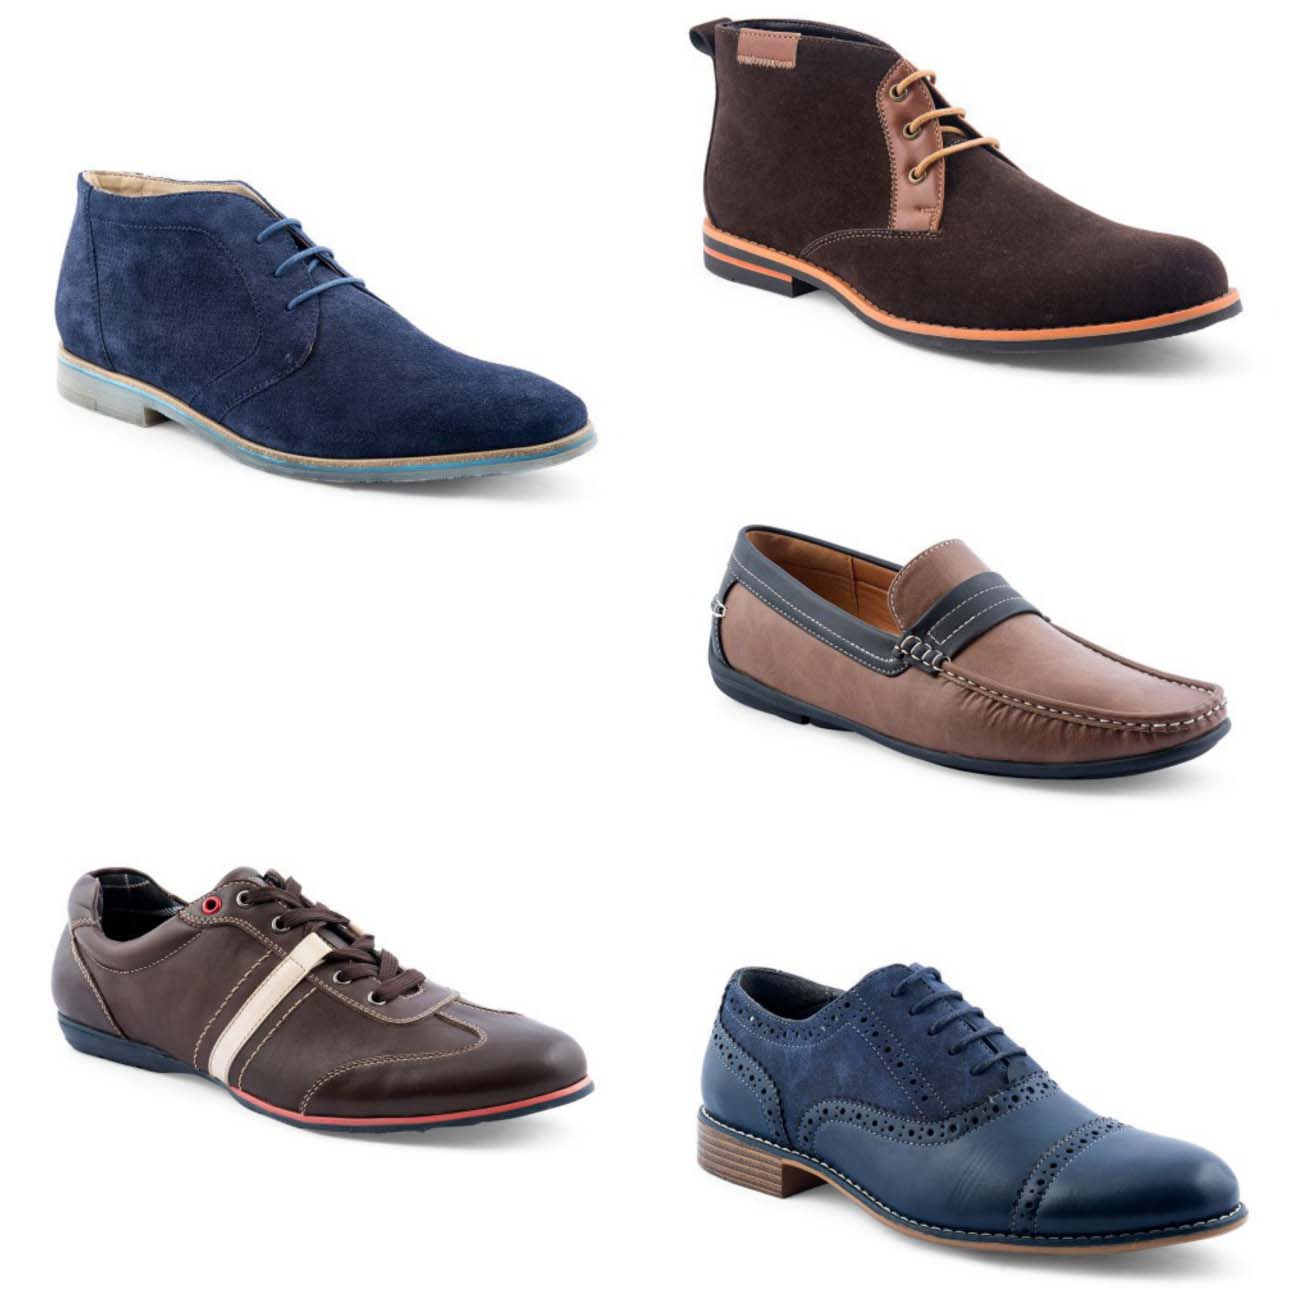 3db87c88c926 Best servis Shoes For Men For winter 2016